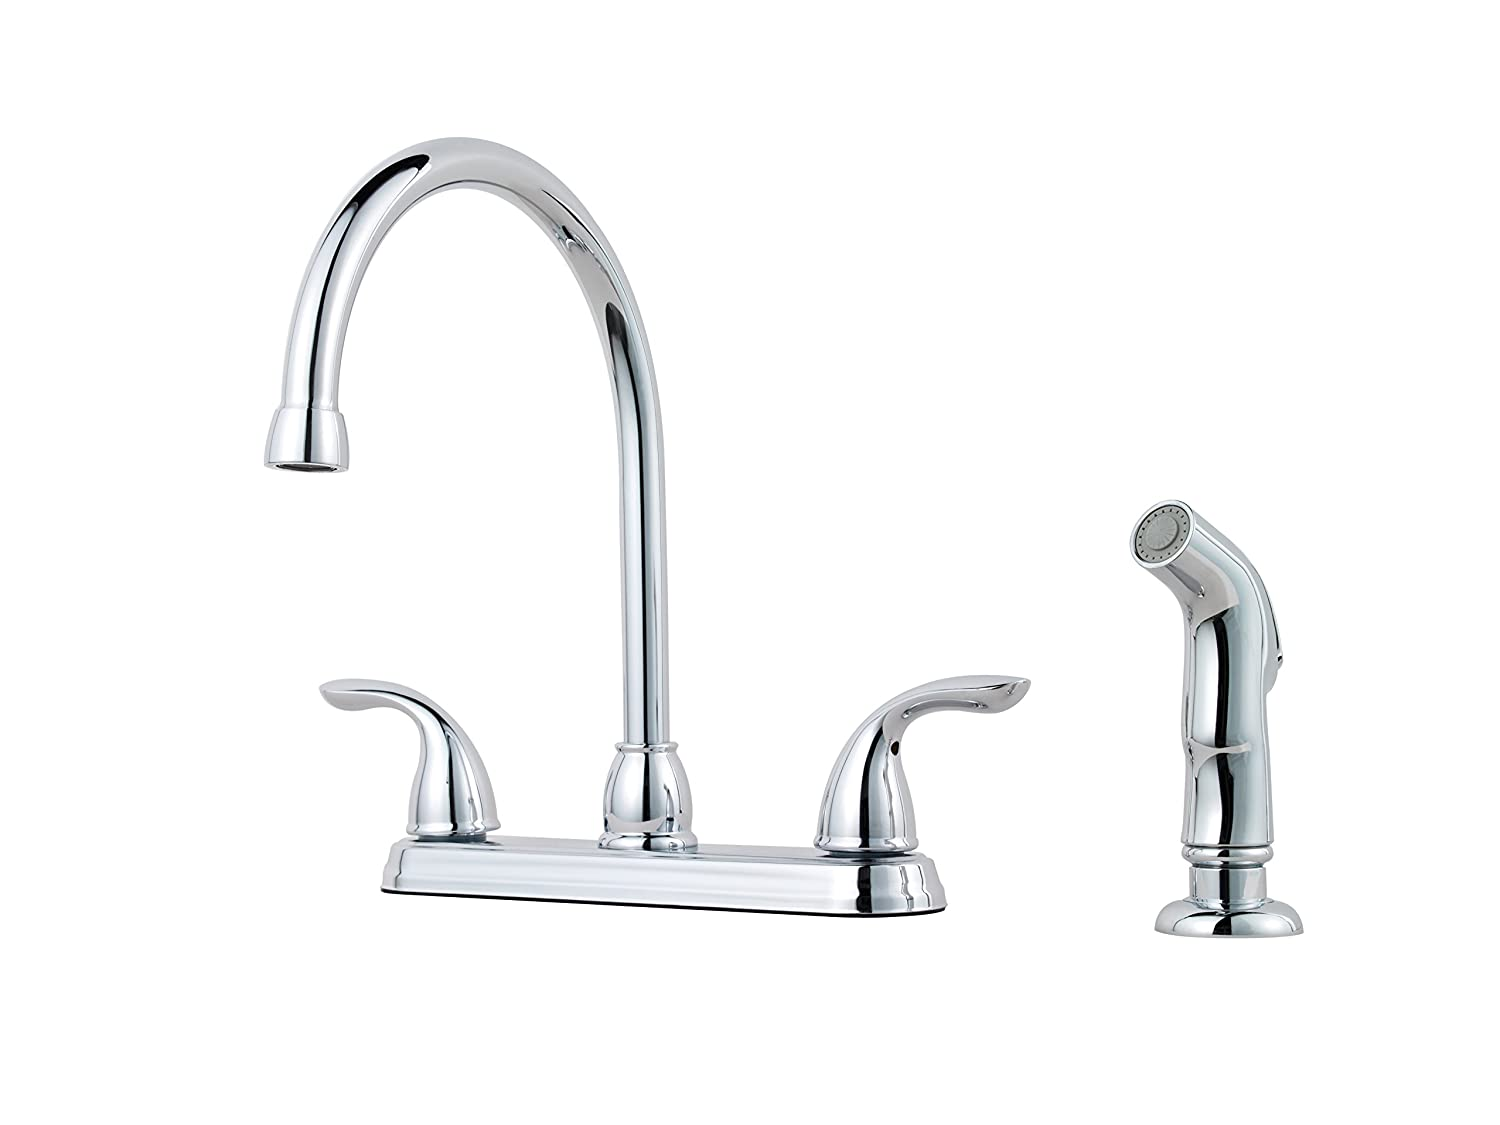 Pfister G136-5000 Pfirst Series 2-Handle Kitchen Faucet with Side Spray in Polished Chrome, 1.8gpm